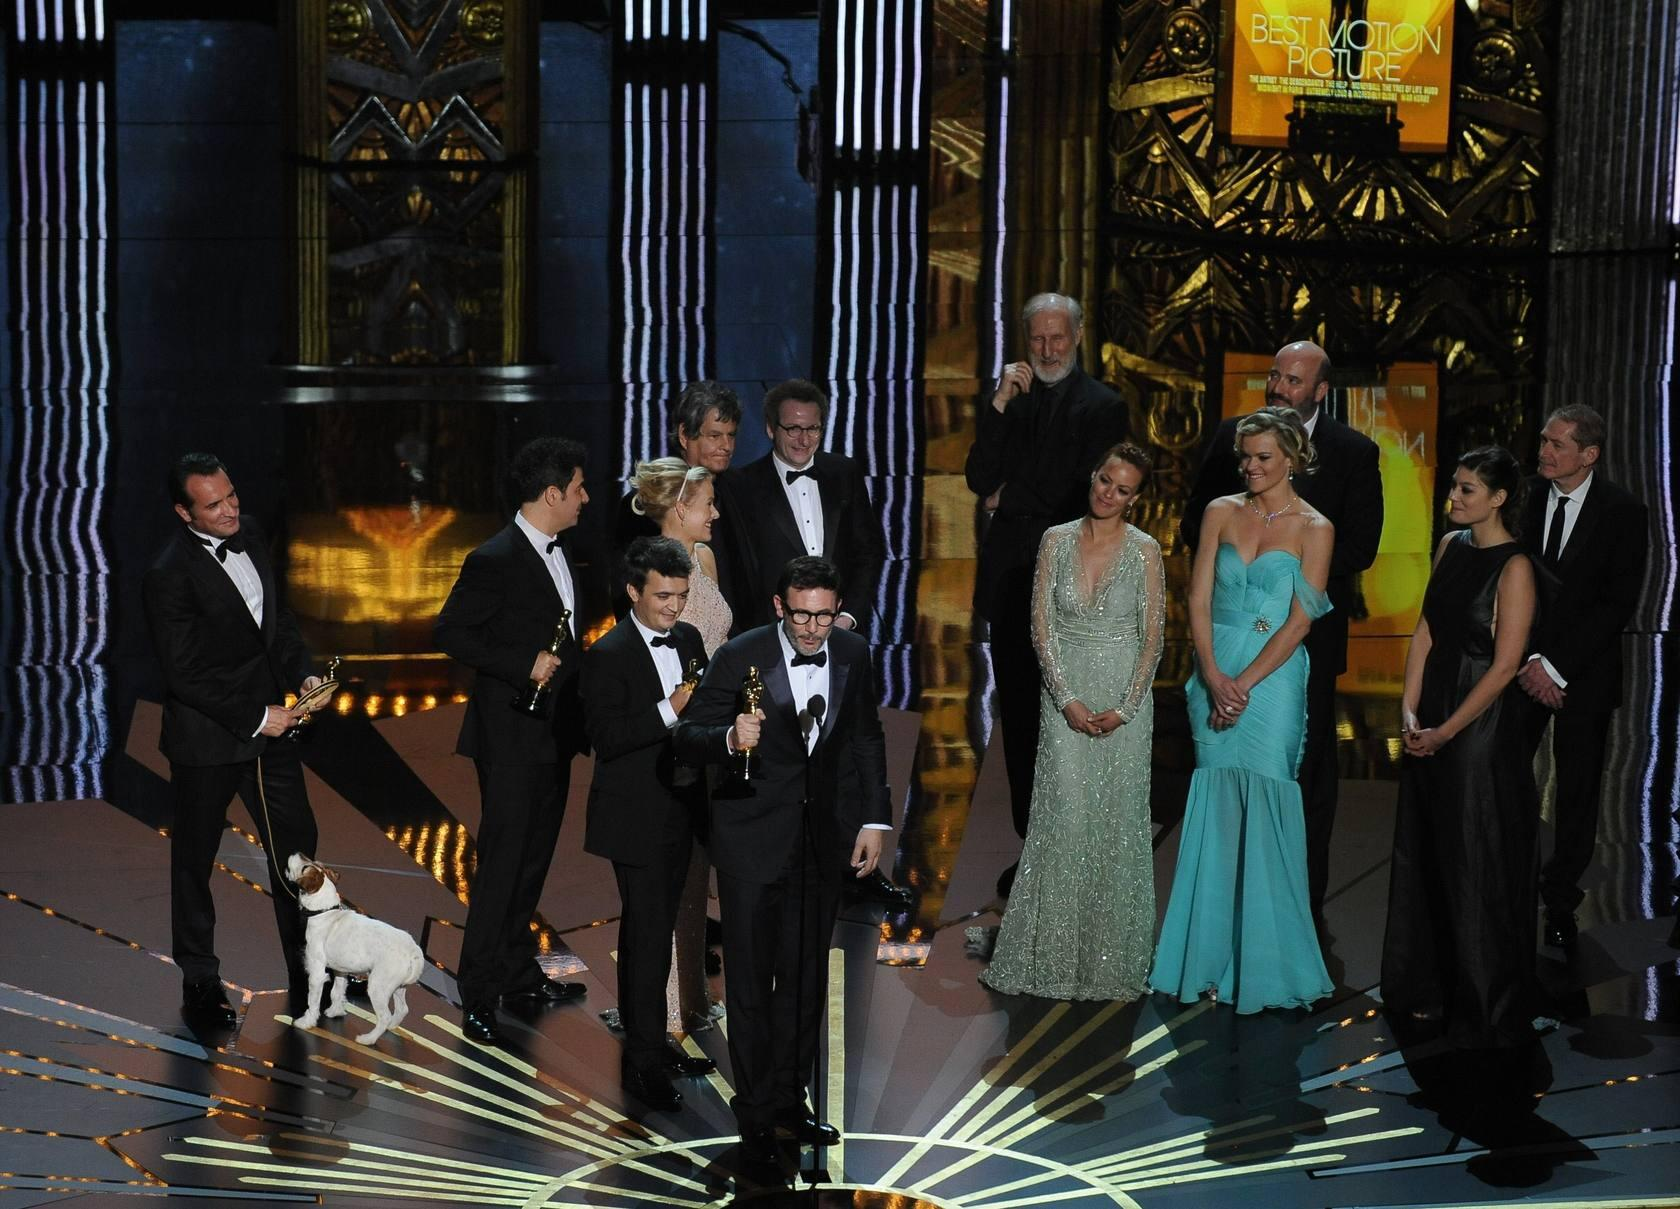 Gala de los Premios Oscar 2012